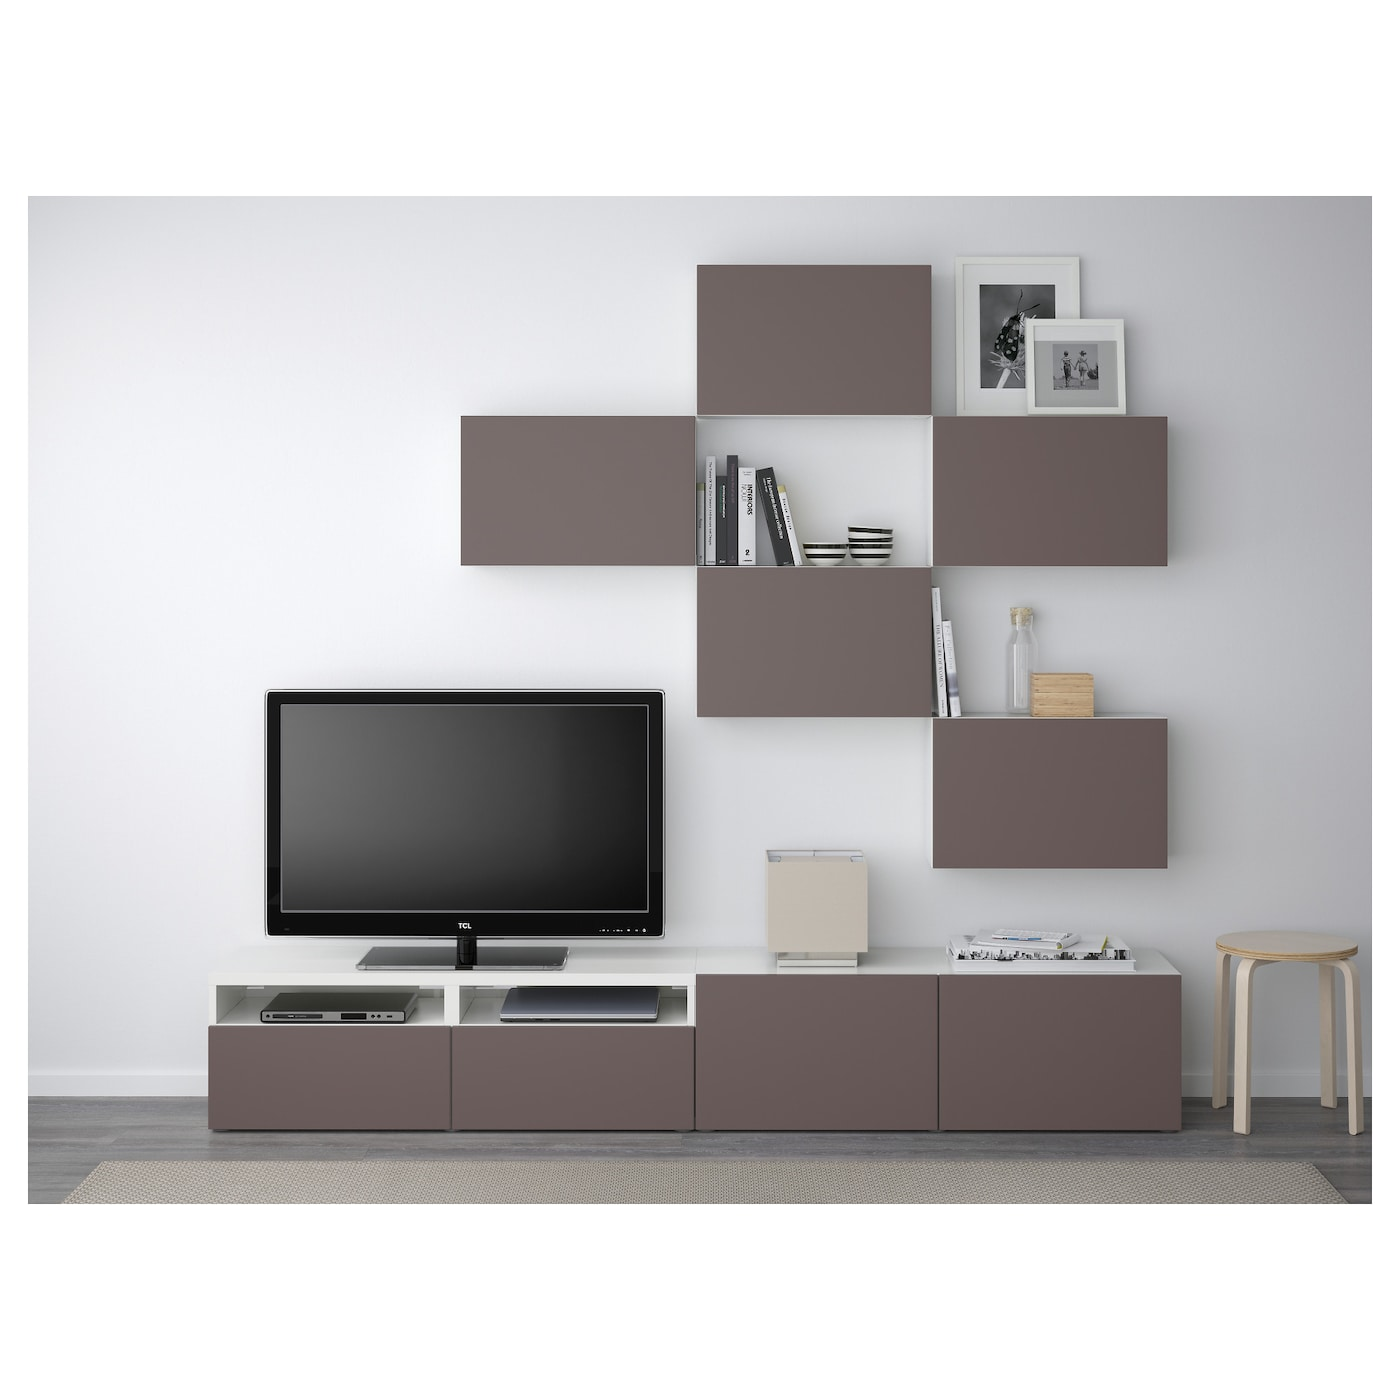 Best tv storage combination white valviken dark brown - Support tv mural ikea ...